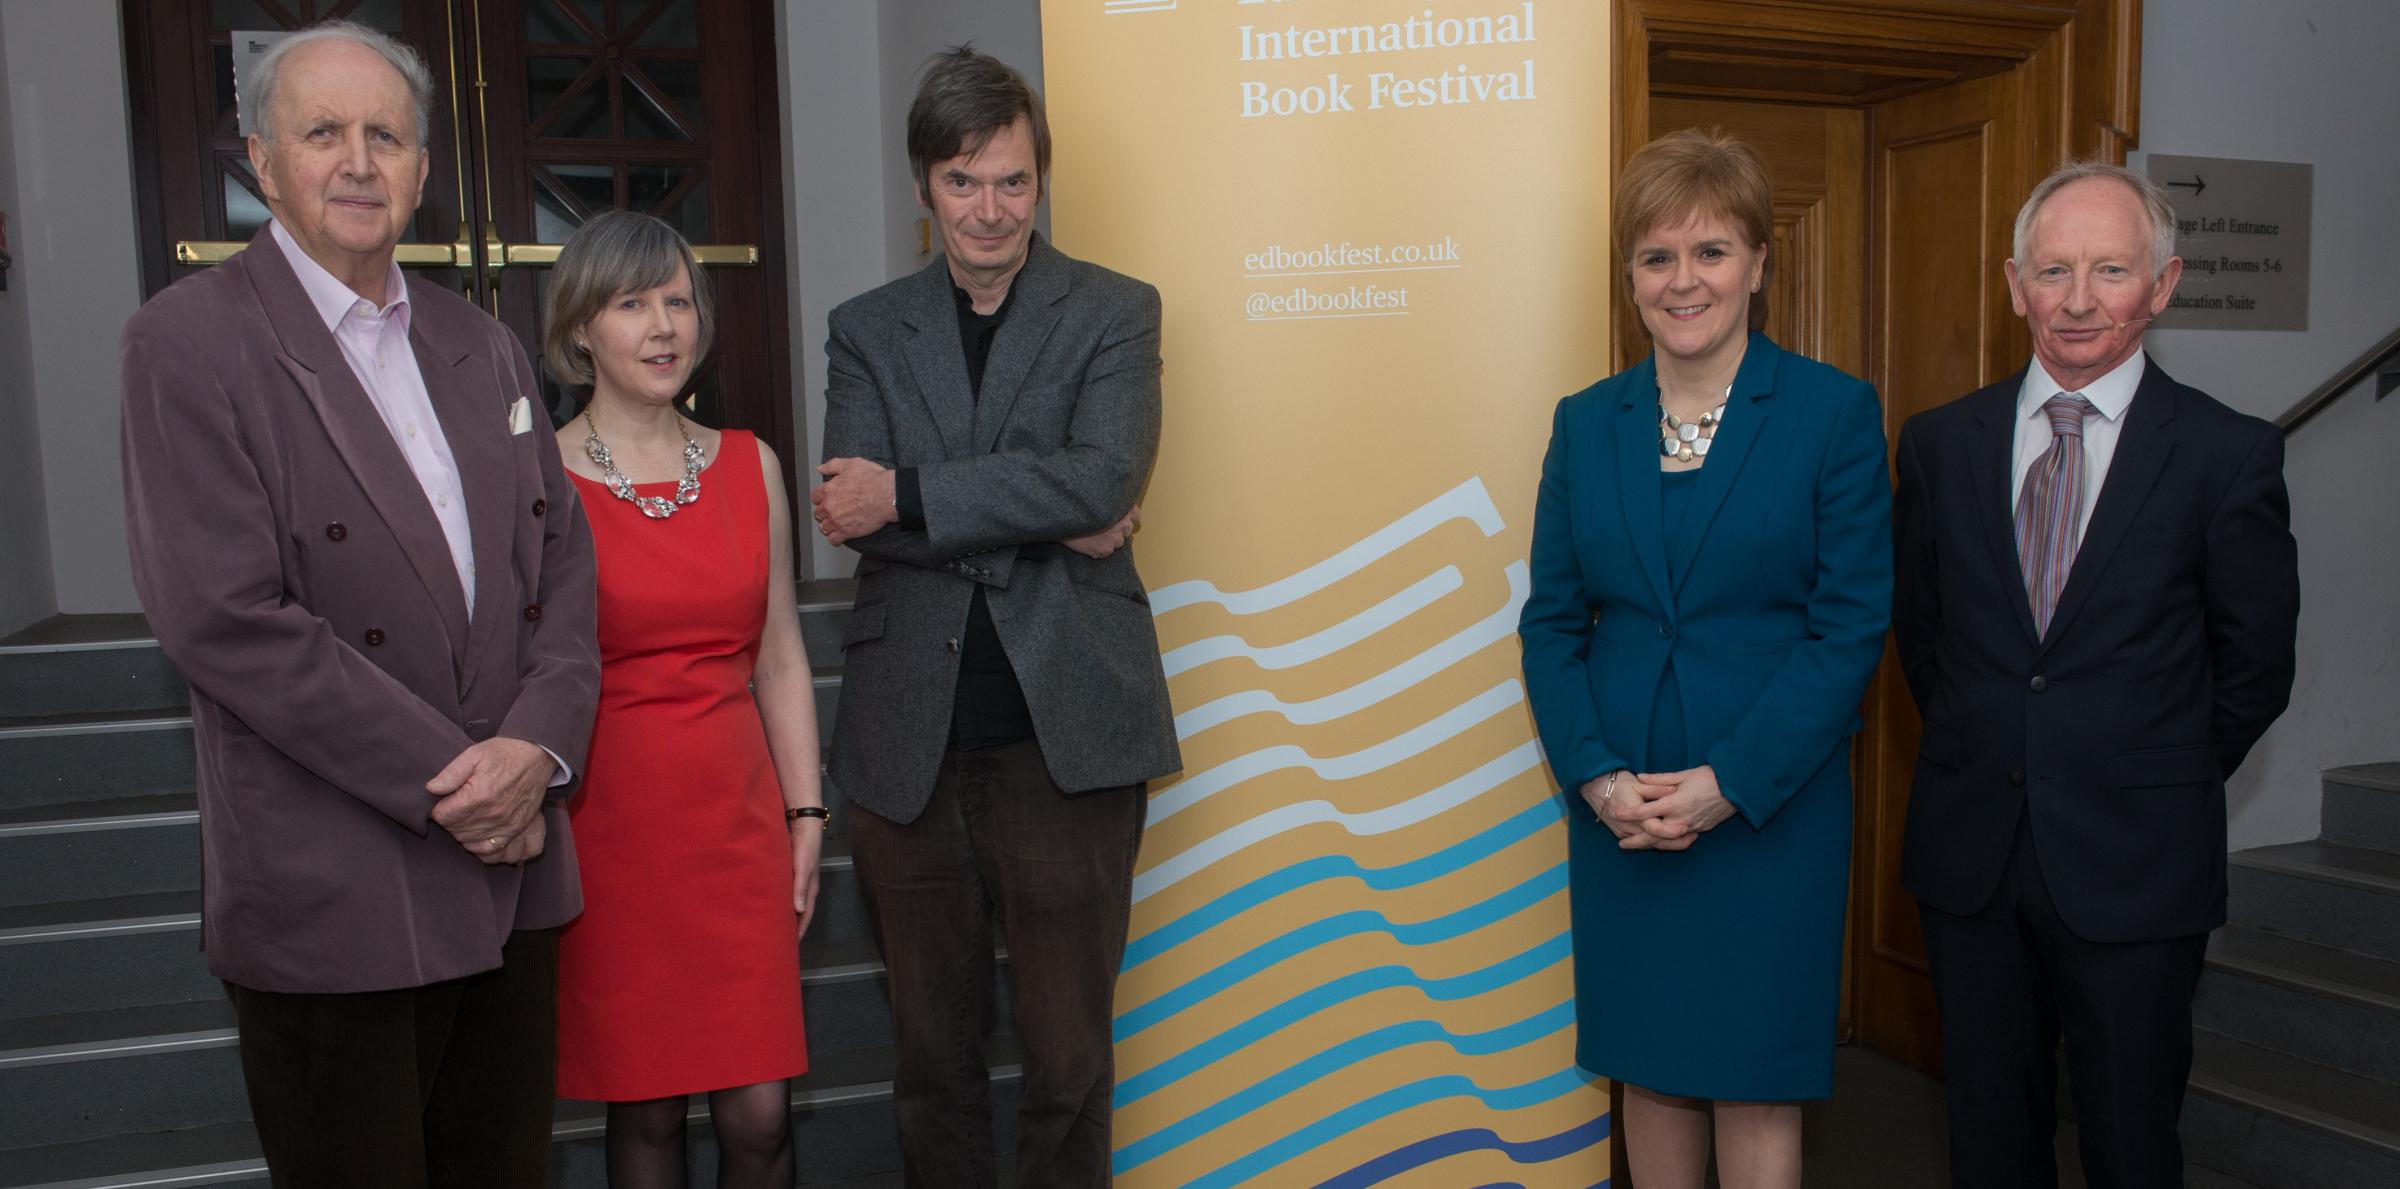 From left: Alexander McCall Smith, Rosemary Goring, Ian Rankin, Nicola Sturgeon and Alan Taylor remembered the Scottish author